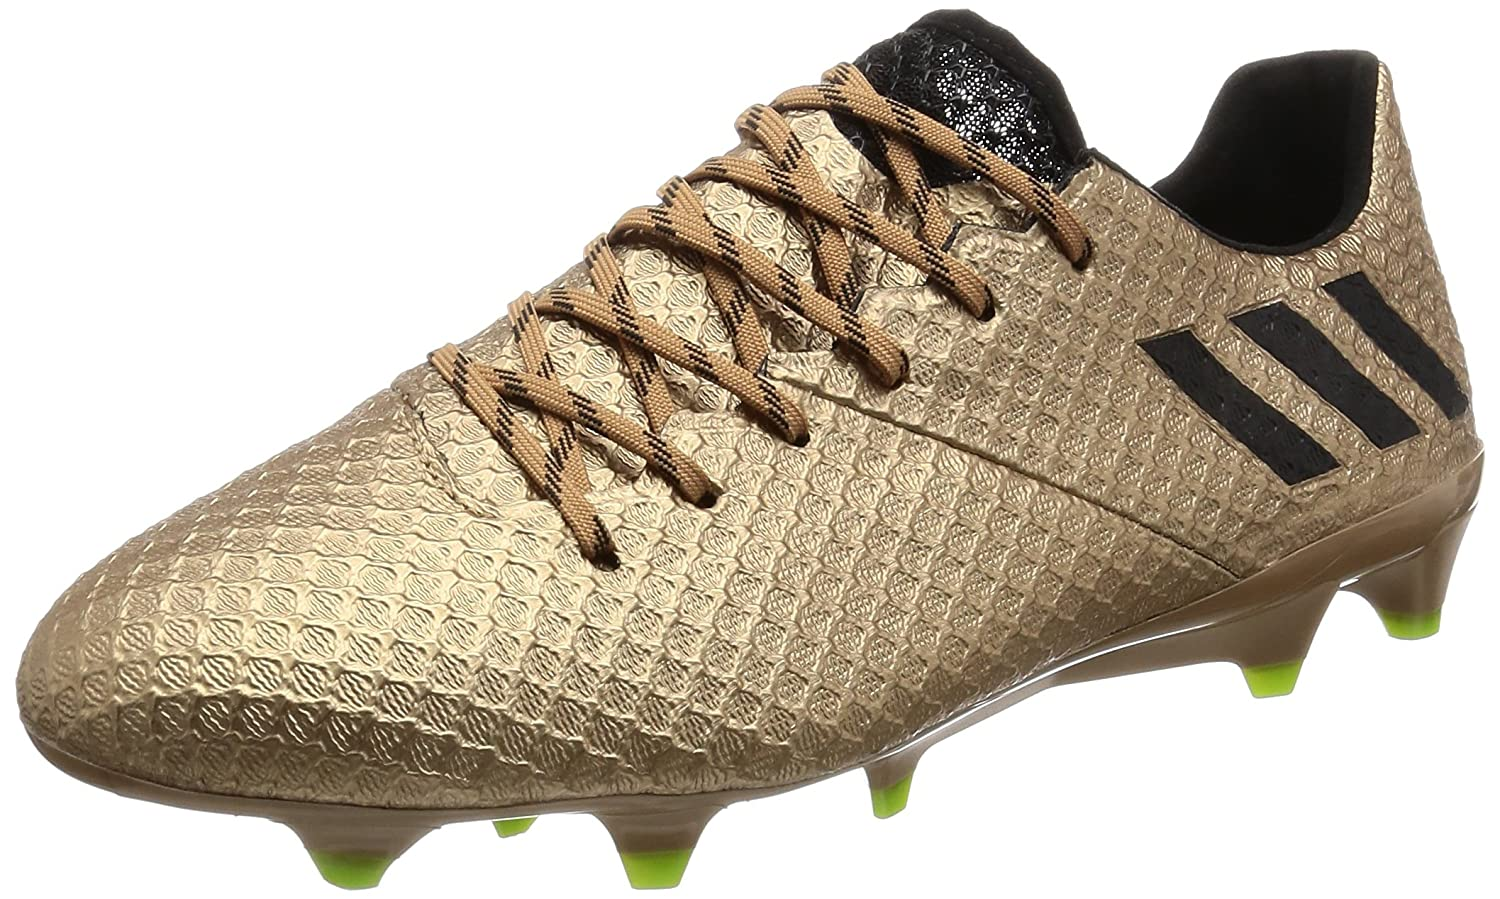 ffcf441b1 Amazon.com | adidas Men Shoes Soccer Football Boots Messi 16.1 Firm Ground  Gold BA9109 New (US 11) | Soccer